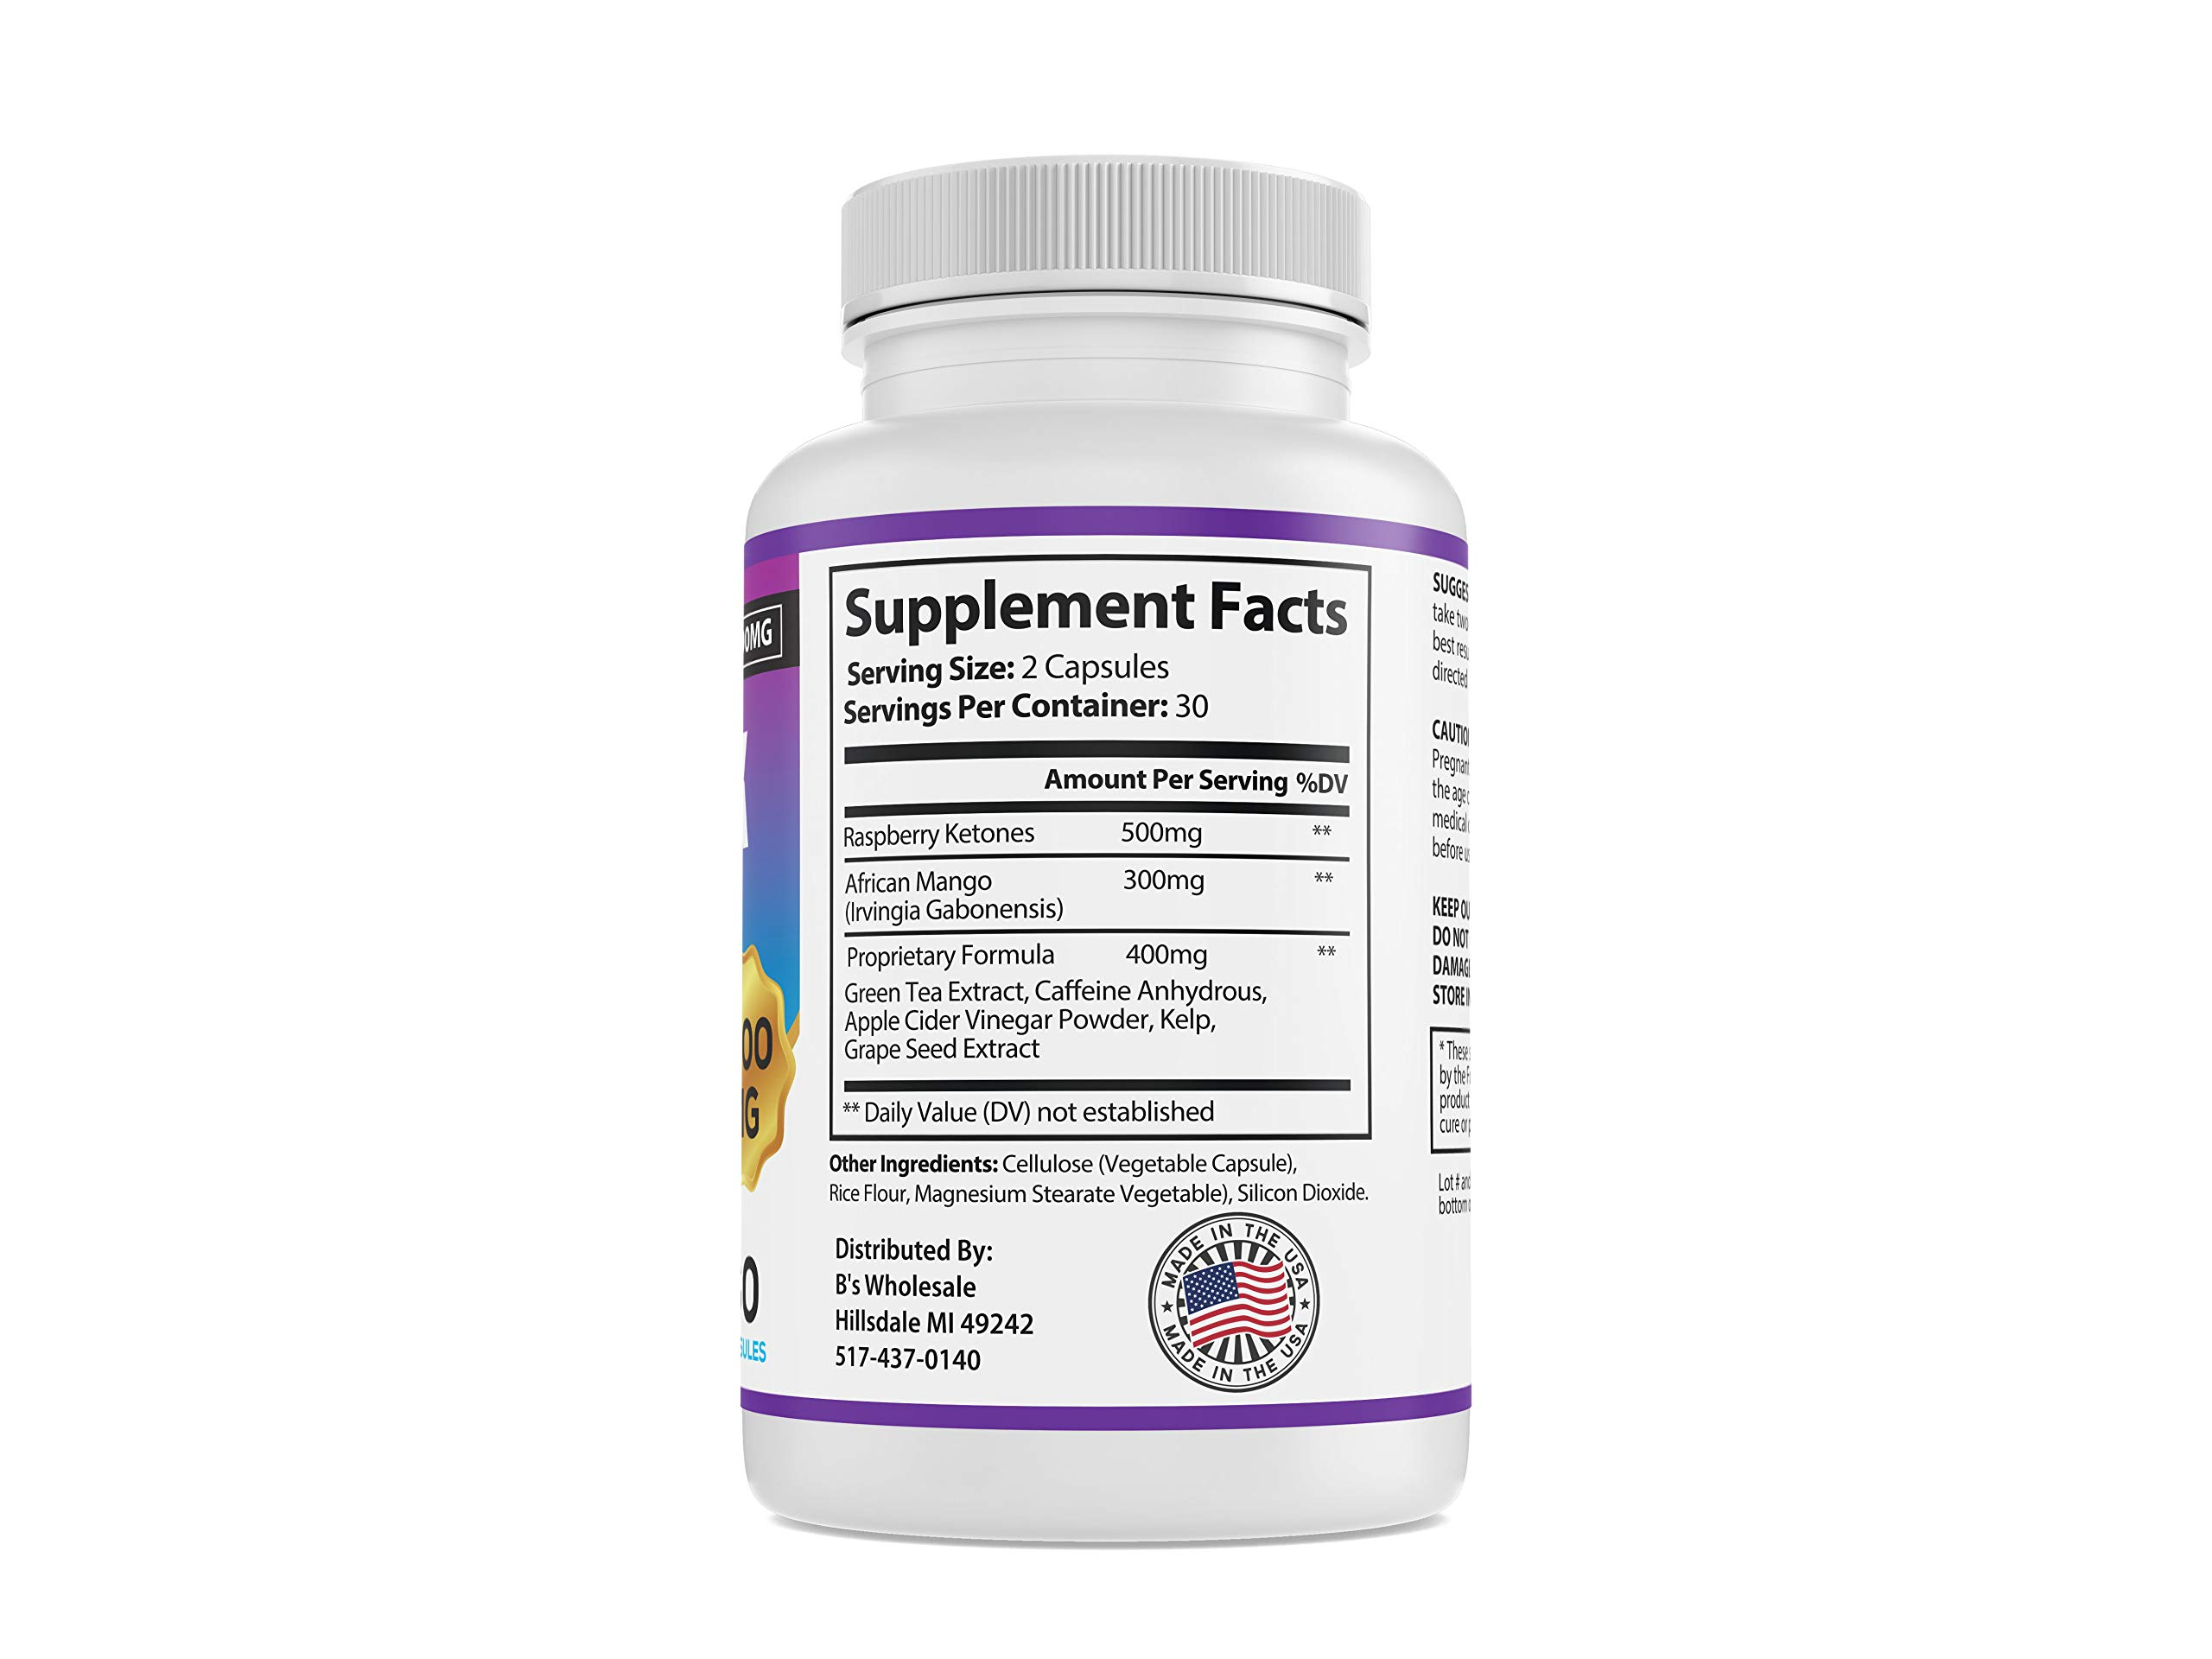 Keto Diet Pills - (1200mg 90 Day Supply) Weight Loss Fat Burner for Women & Men, Perfect Exogenous Ketones Supplement Burners by Keto Extra Strength 1200 (Image #6)